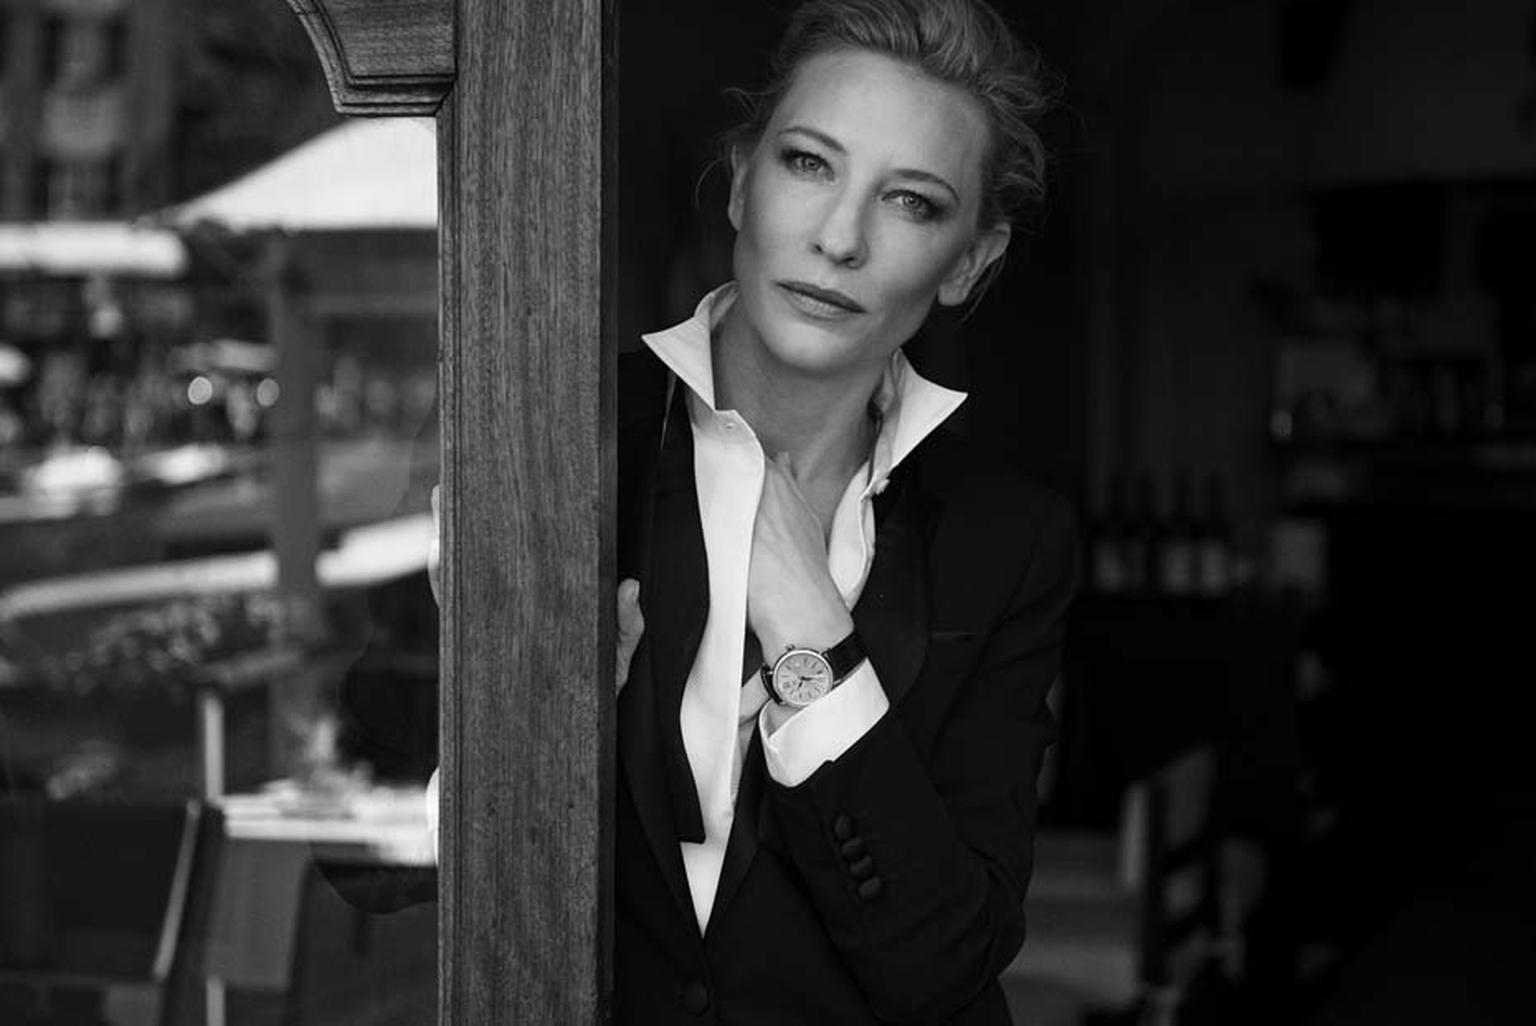 Wearing the IWC Portofino Midsize Automatic Day & Night watch featuring a red gold case set with 66 diamonds, Cate Blanchett looks on with sultry eyes at the camera.